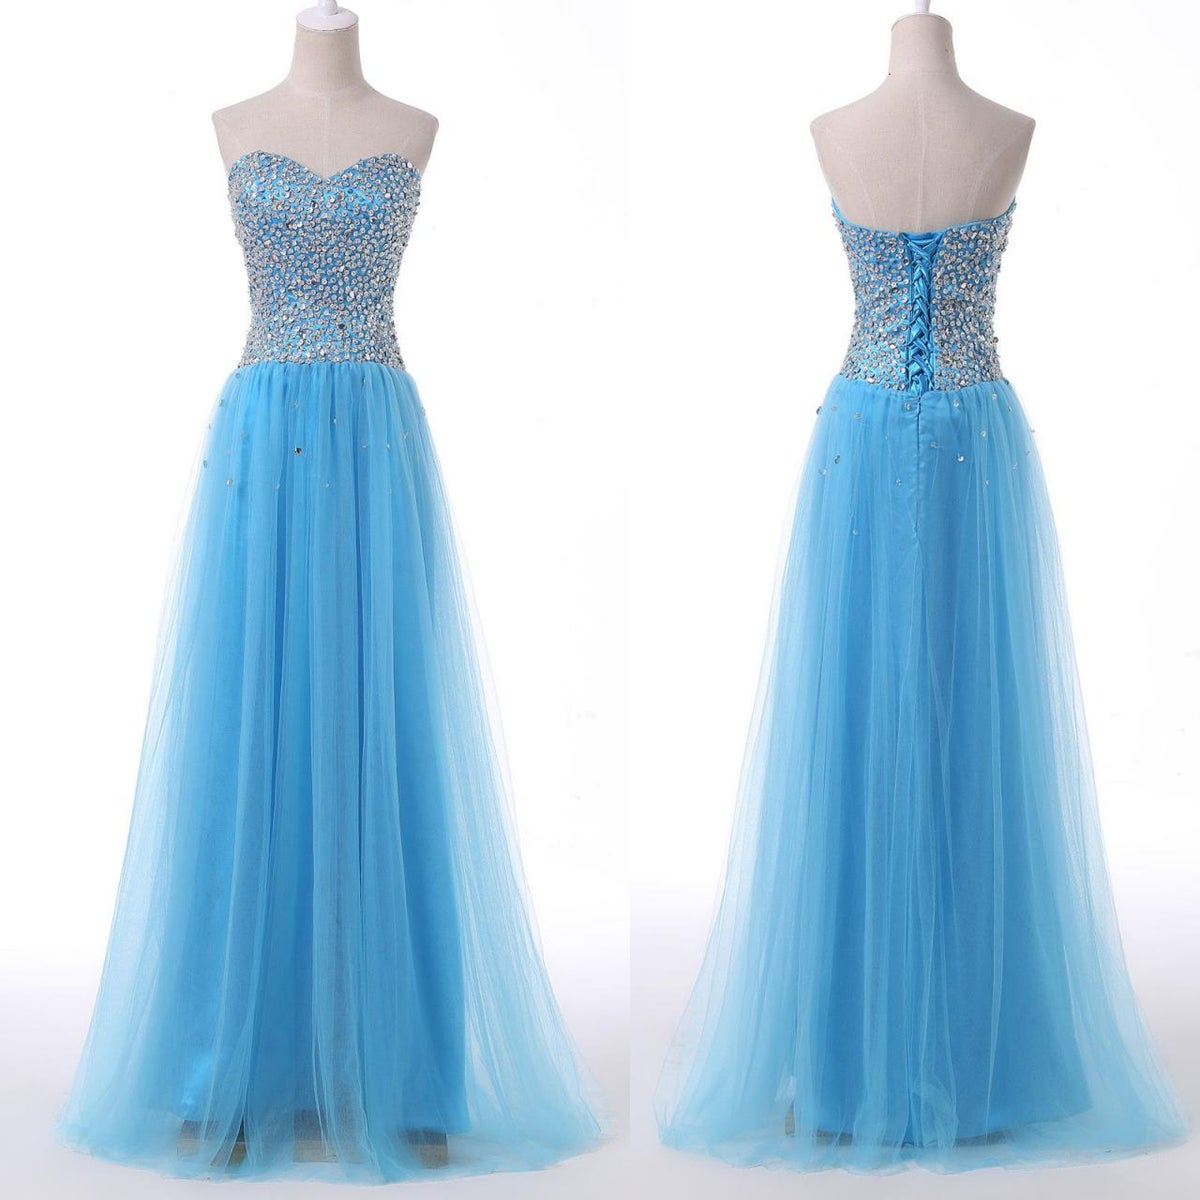 High Quality Handmade Blue Tulle Prom Dresses with Sequins, Blue Prom Gowns, Formal Gowns